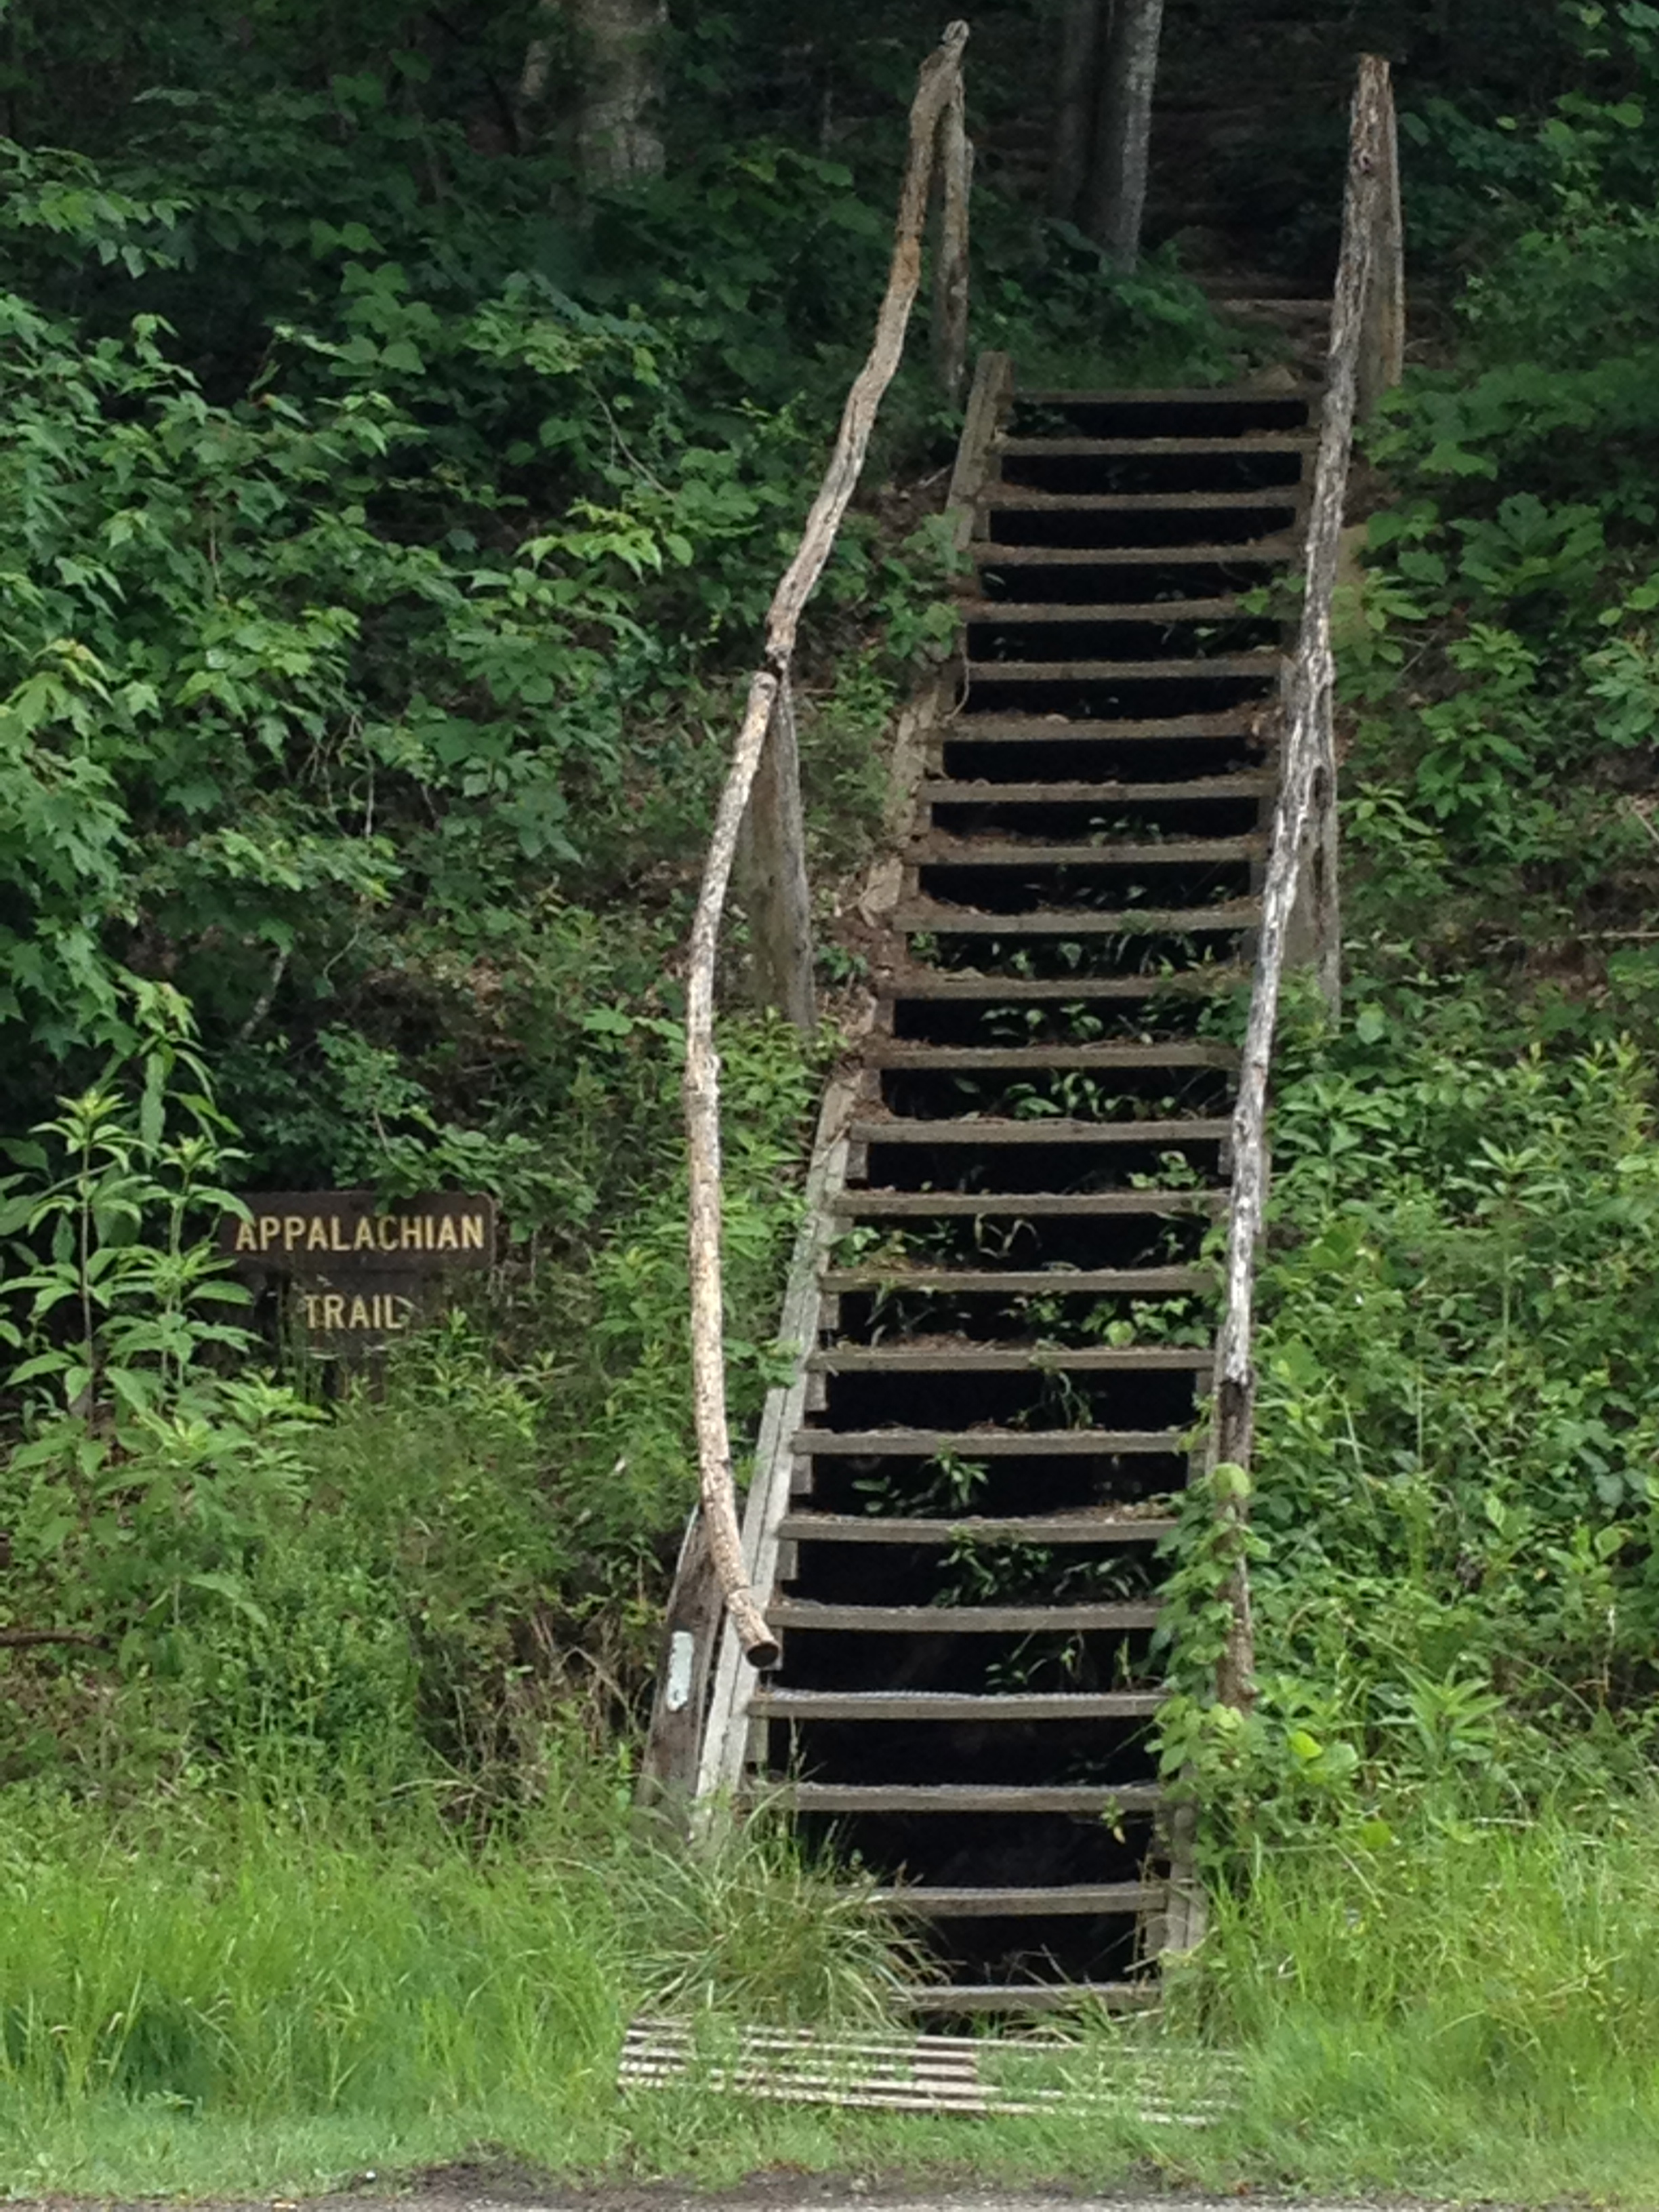 The steps leading the the Appalachain Trail in Damascus